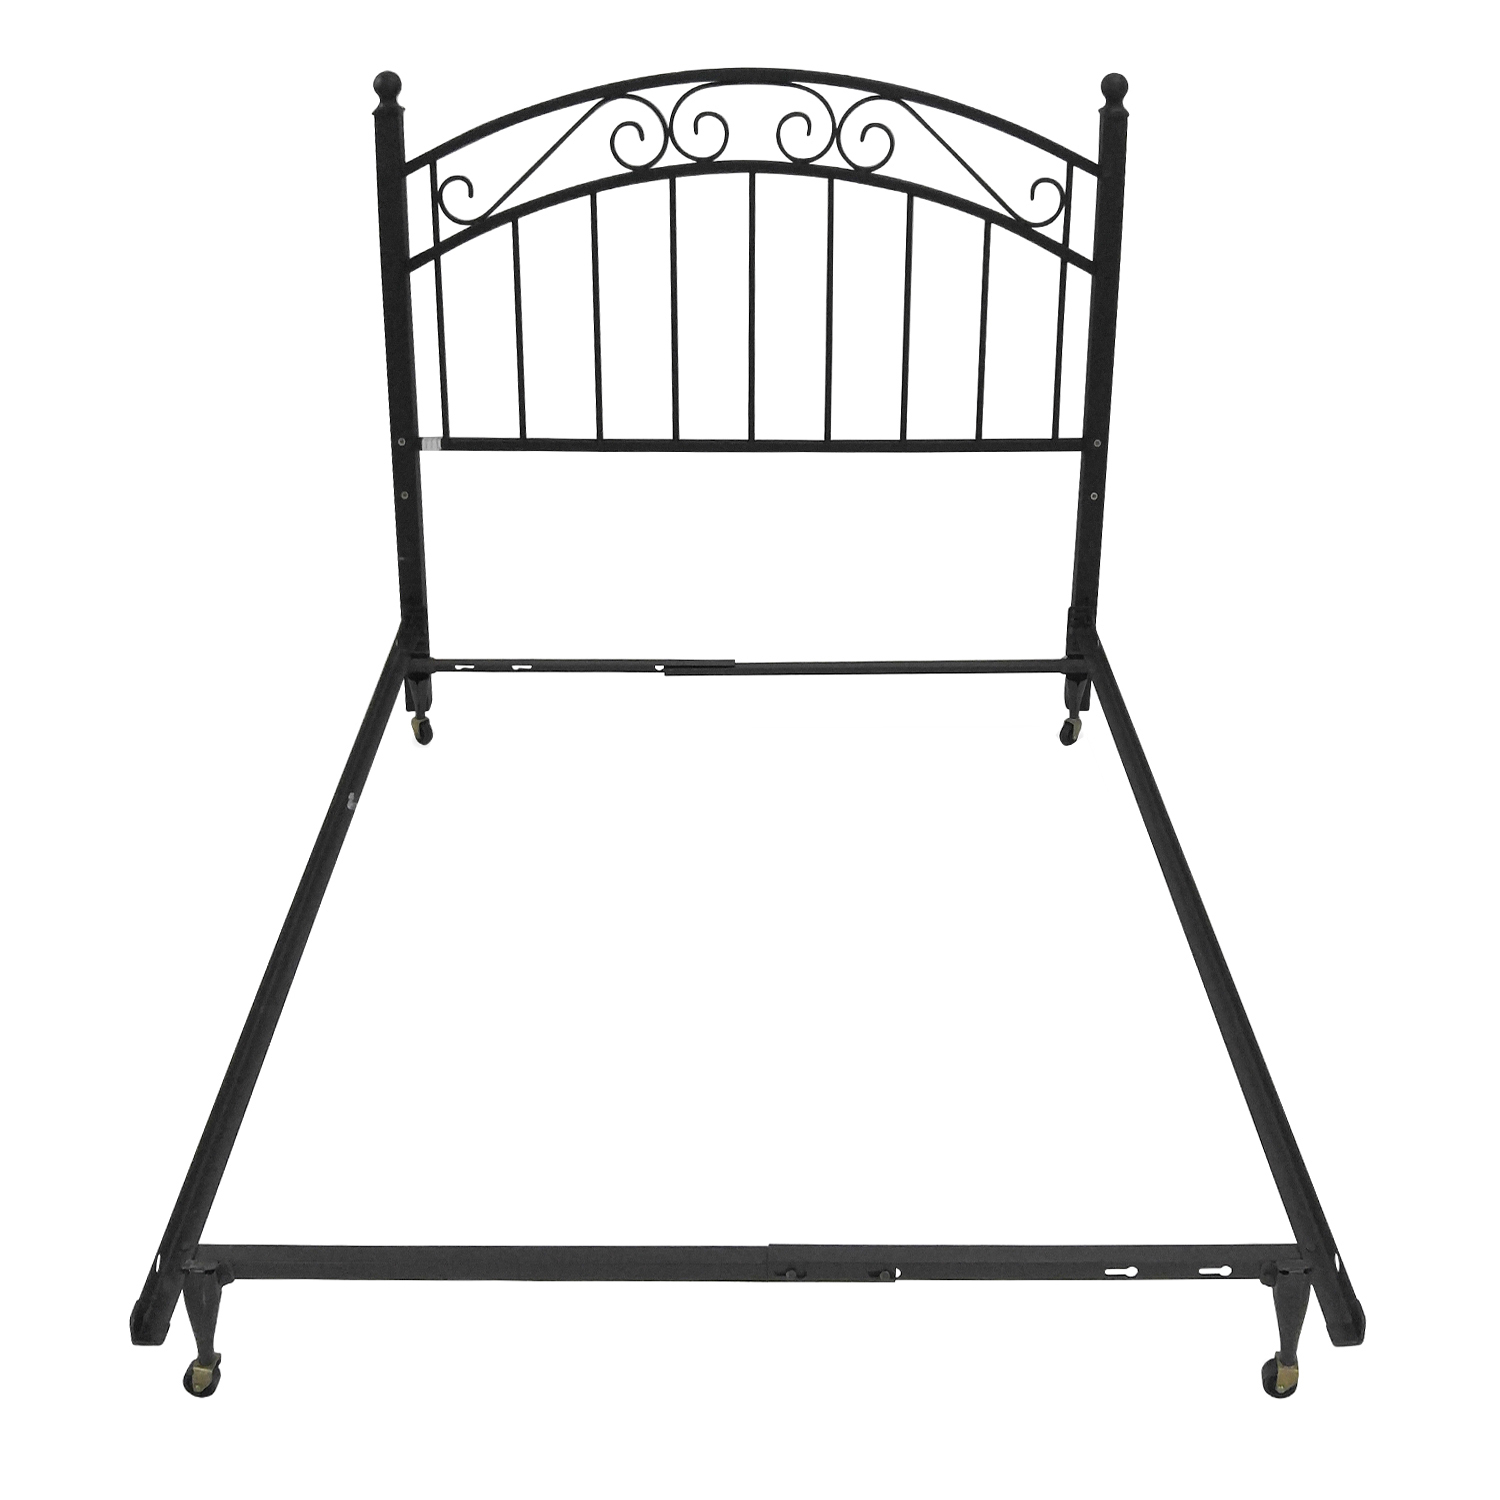 Crate and Barrel Full Iron Bed Frame and Headboard / Bed Frames